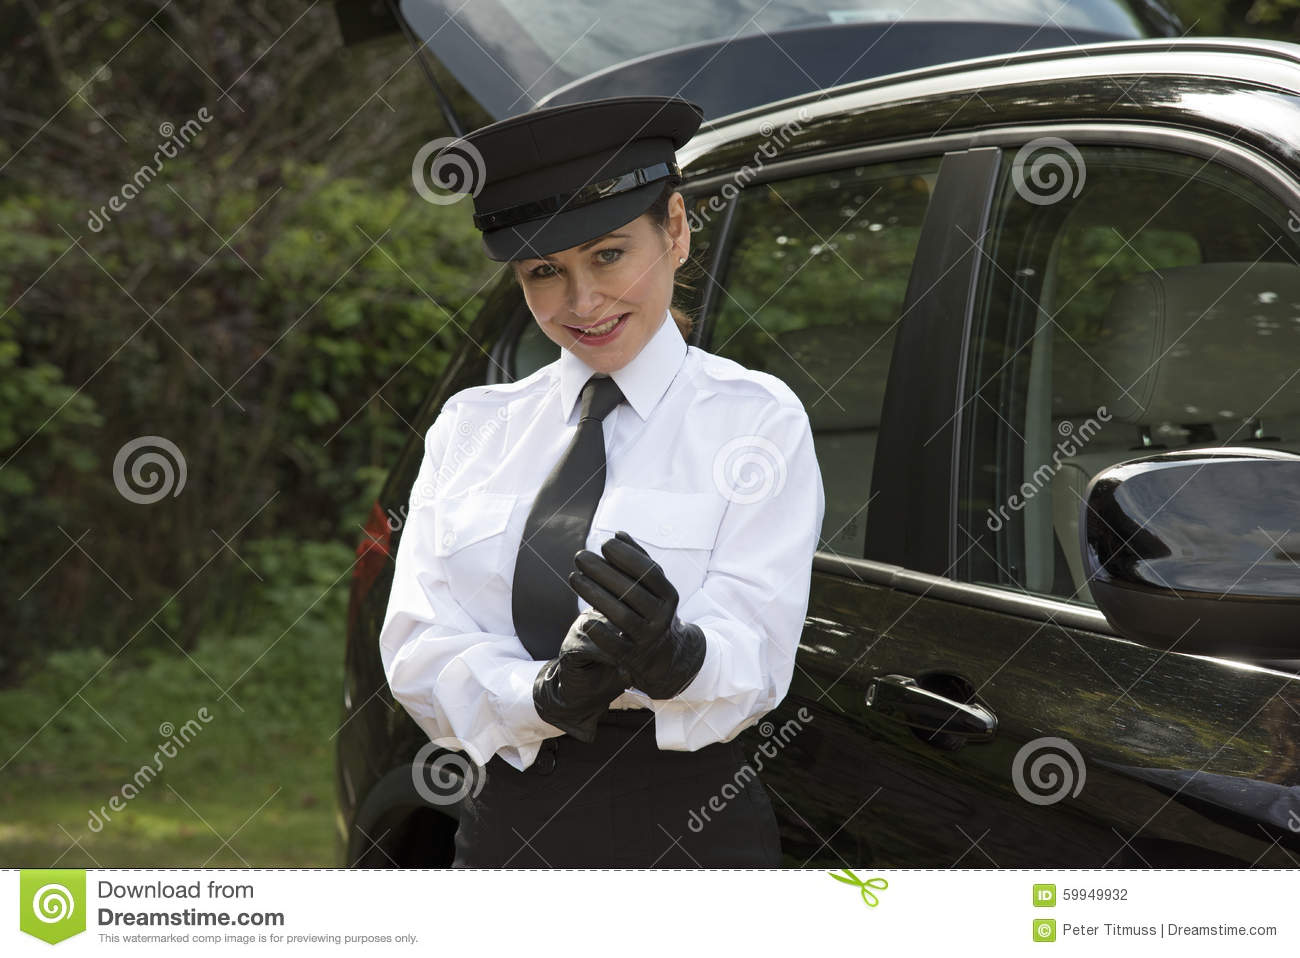 Black leather uniform gloves - Chauffeur Putting On Her Driving Gloves